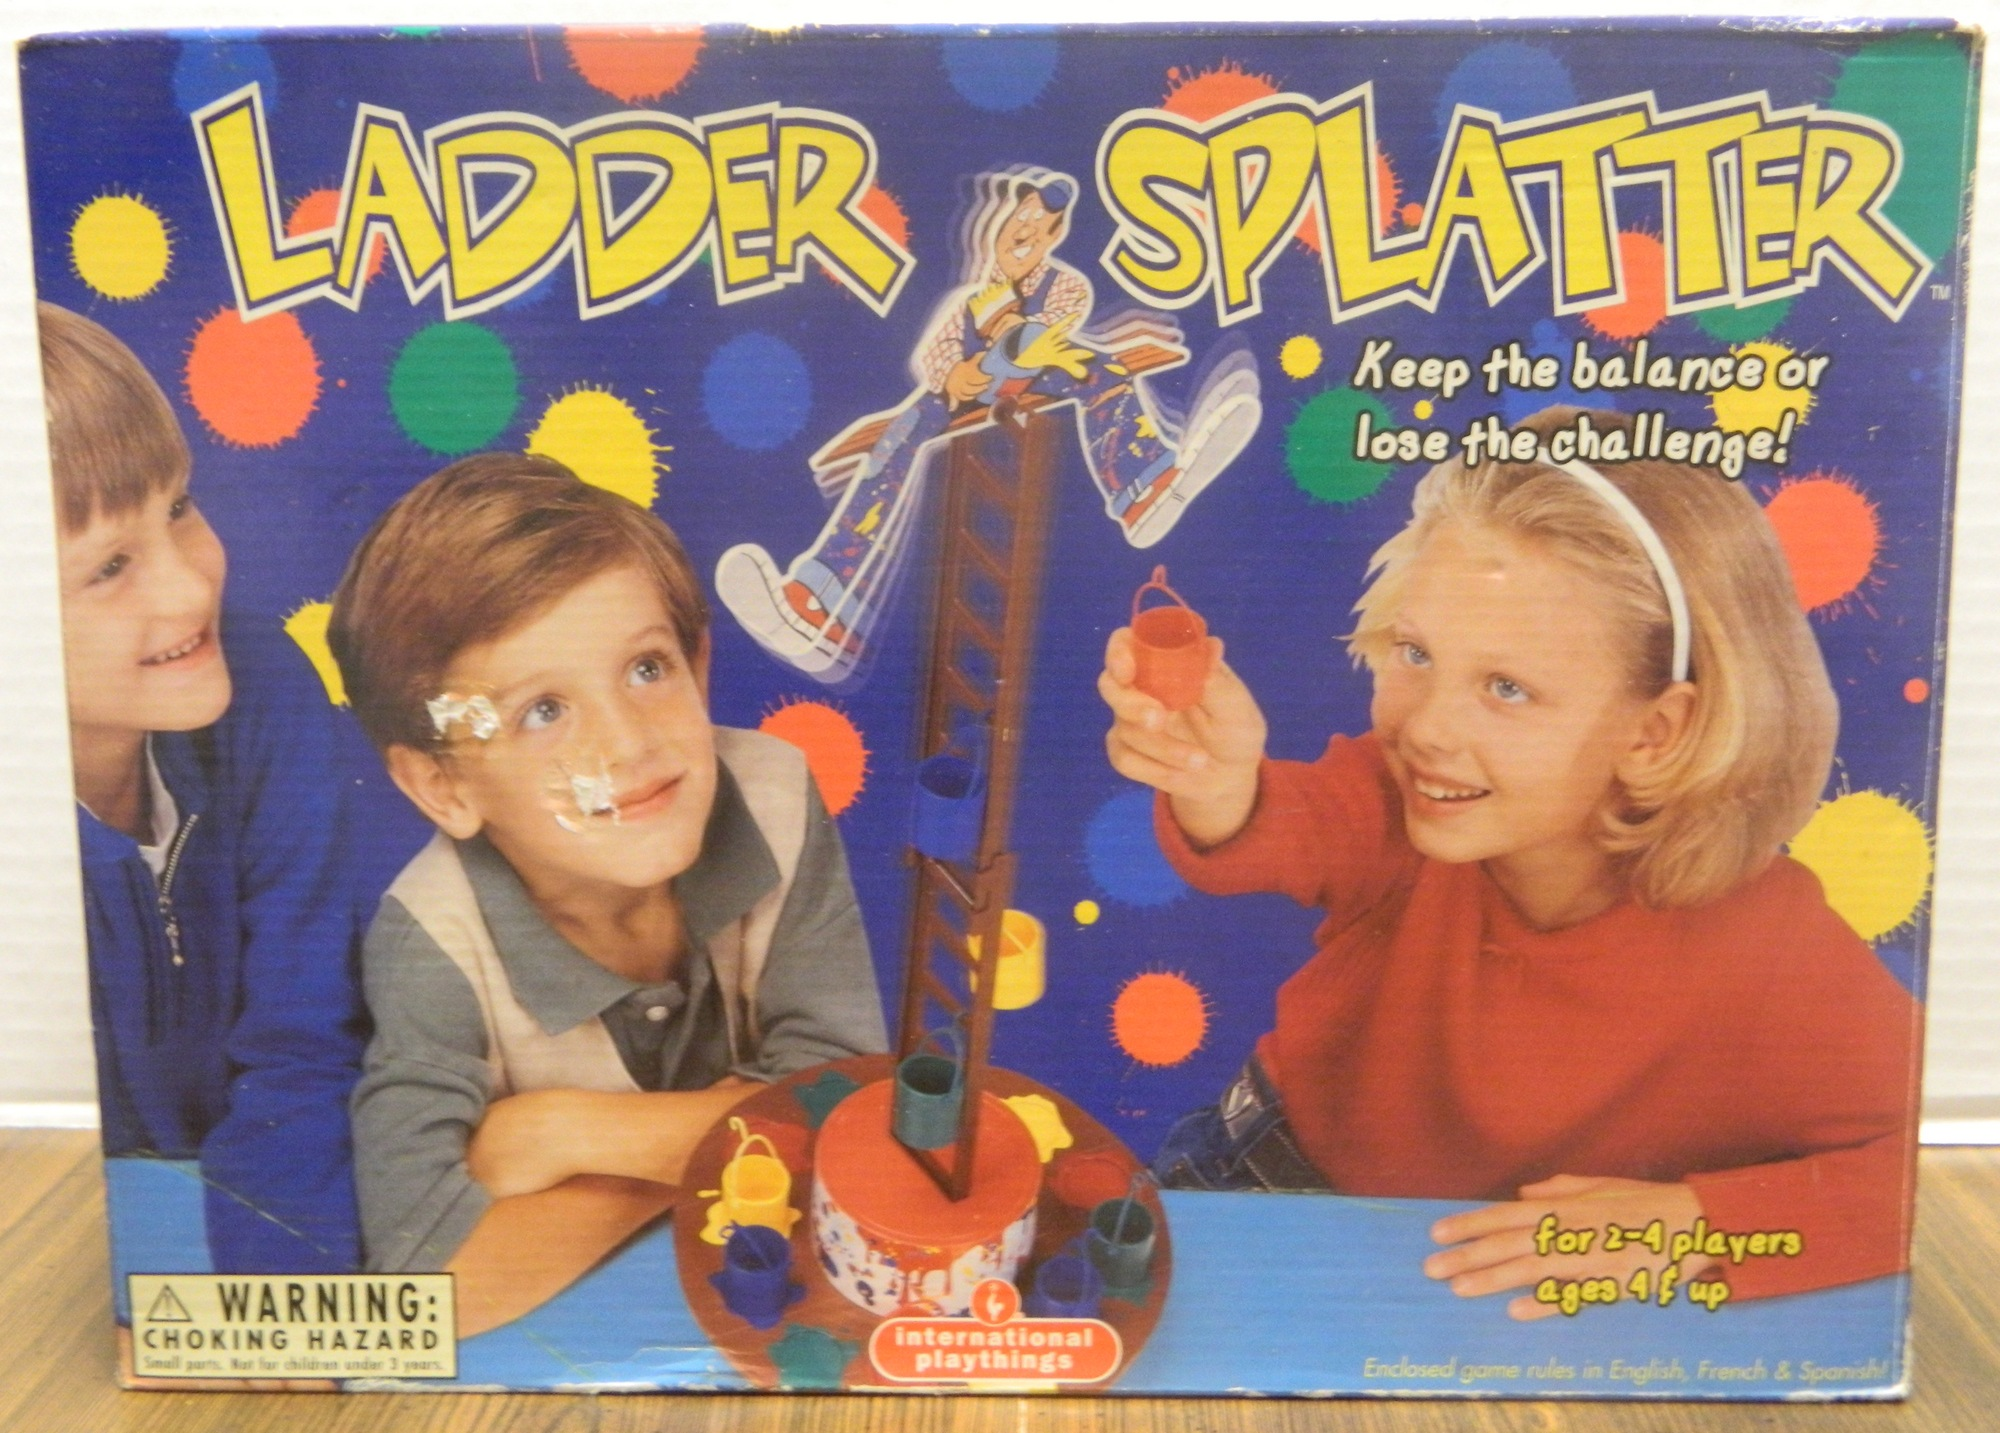 Ladder Splatter Box